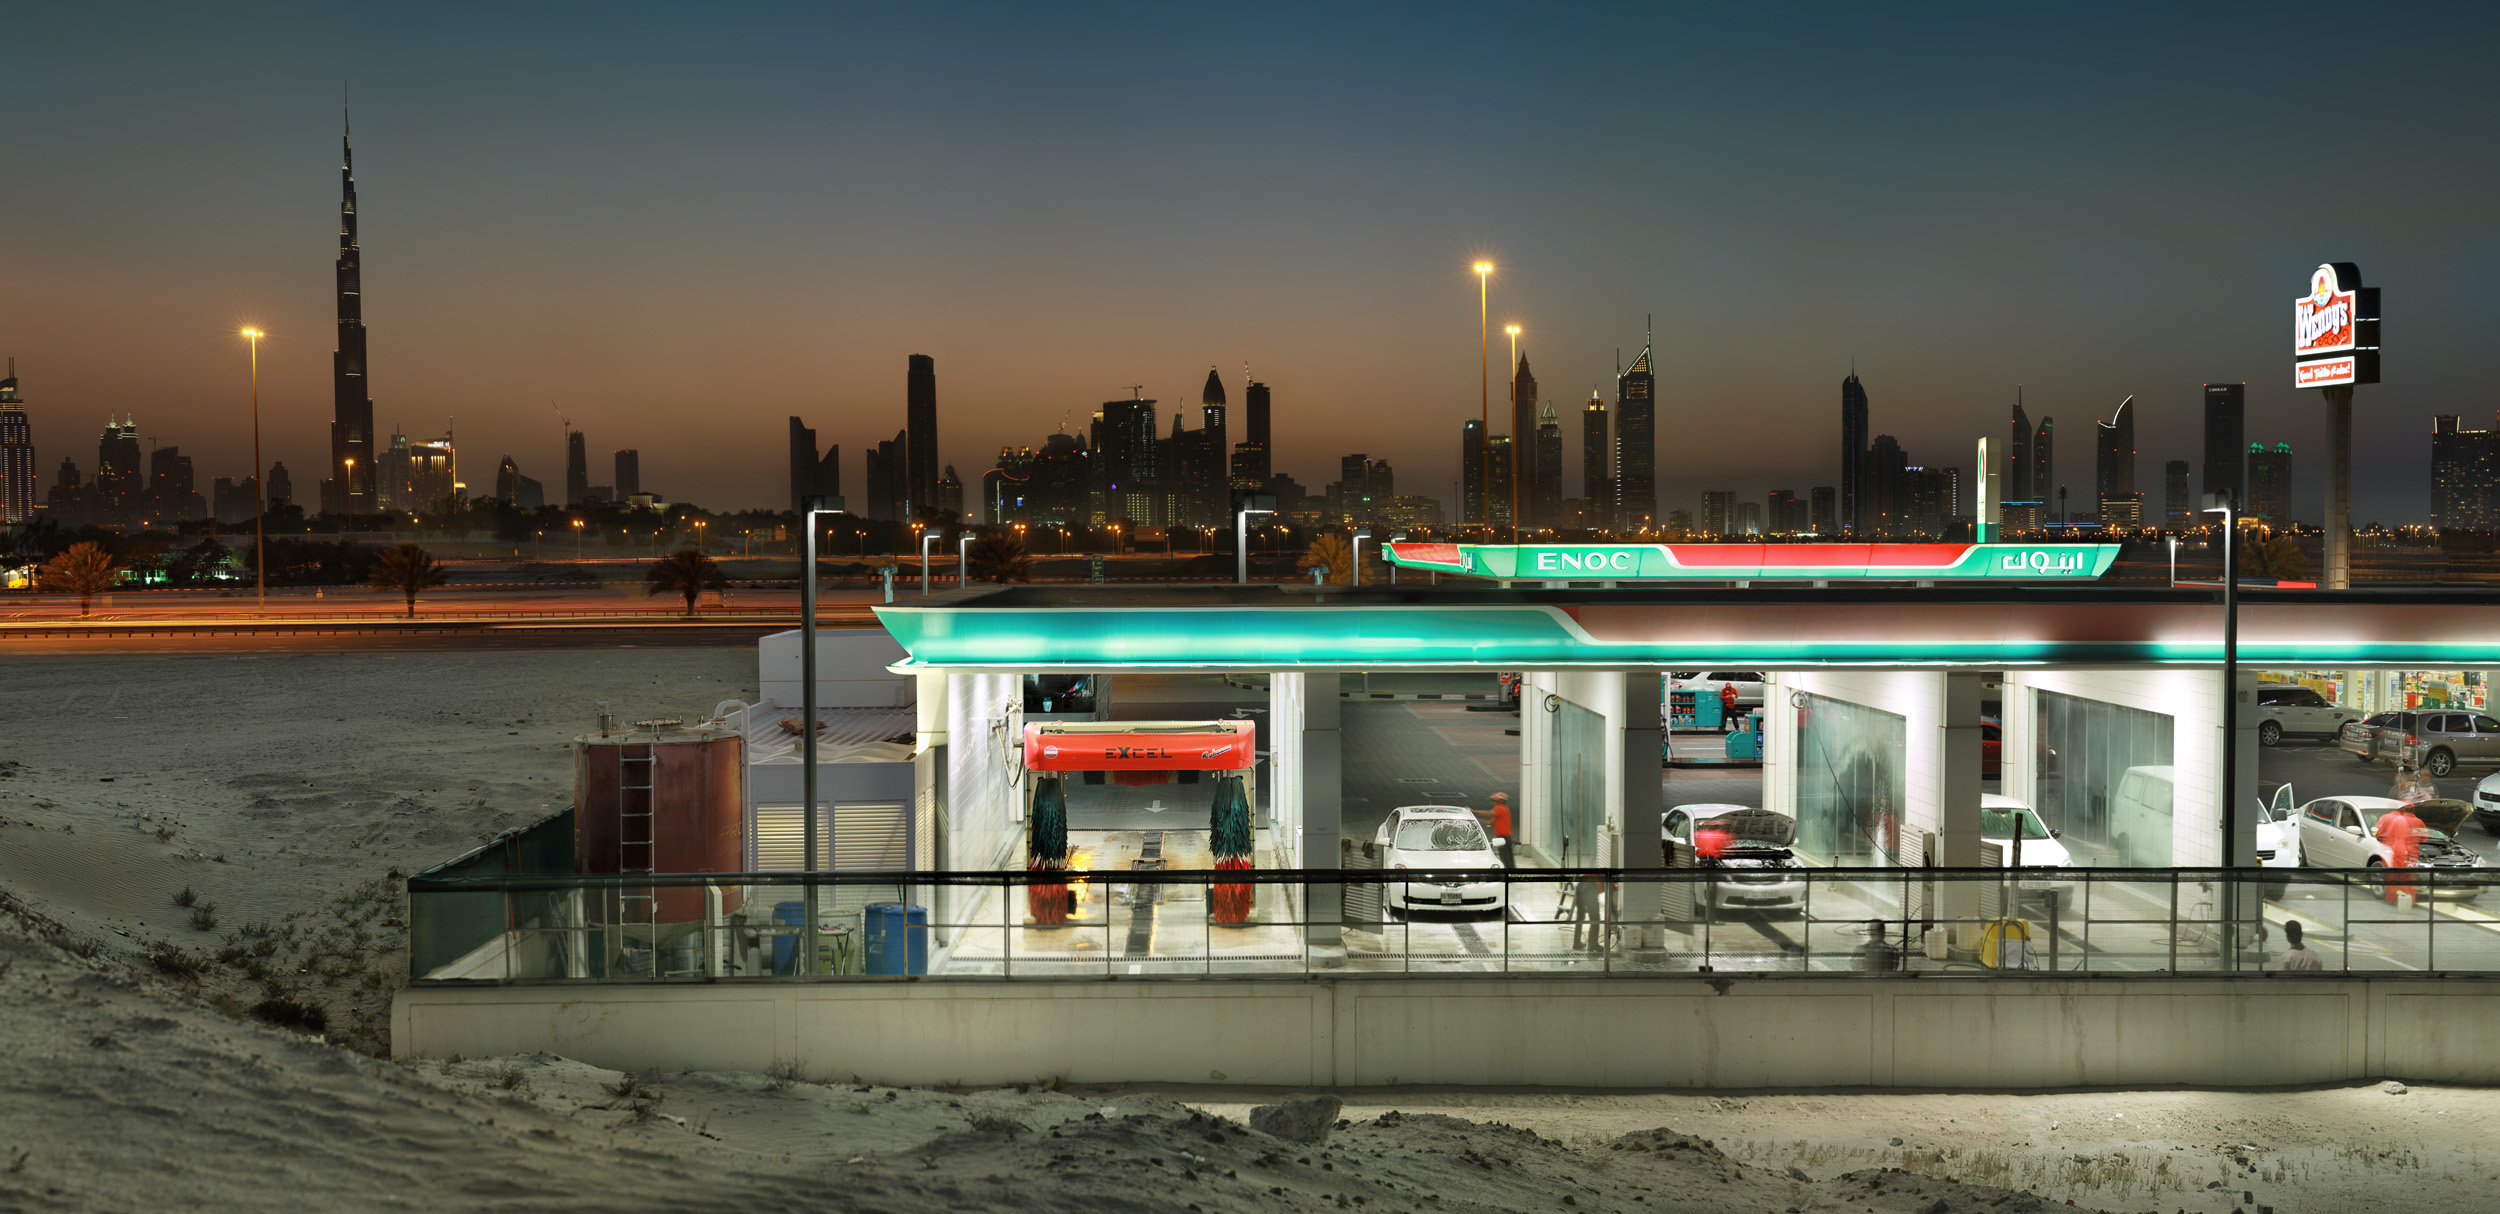 EMDB-GAD - Gas Station at dusk (Dubai)A.jpg